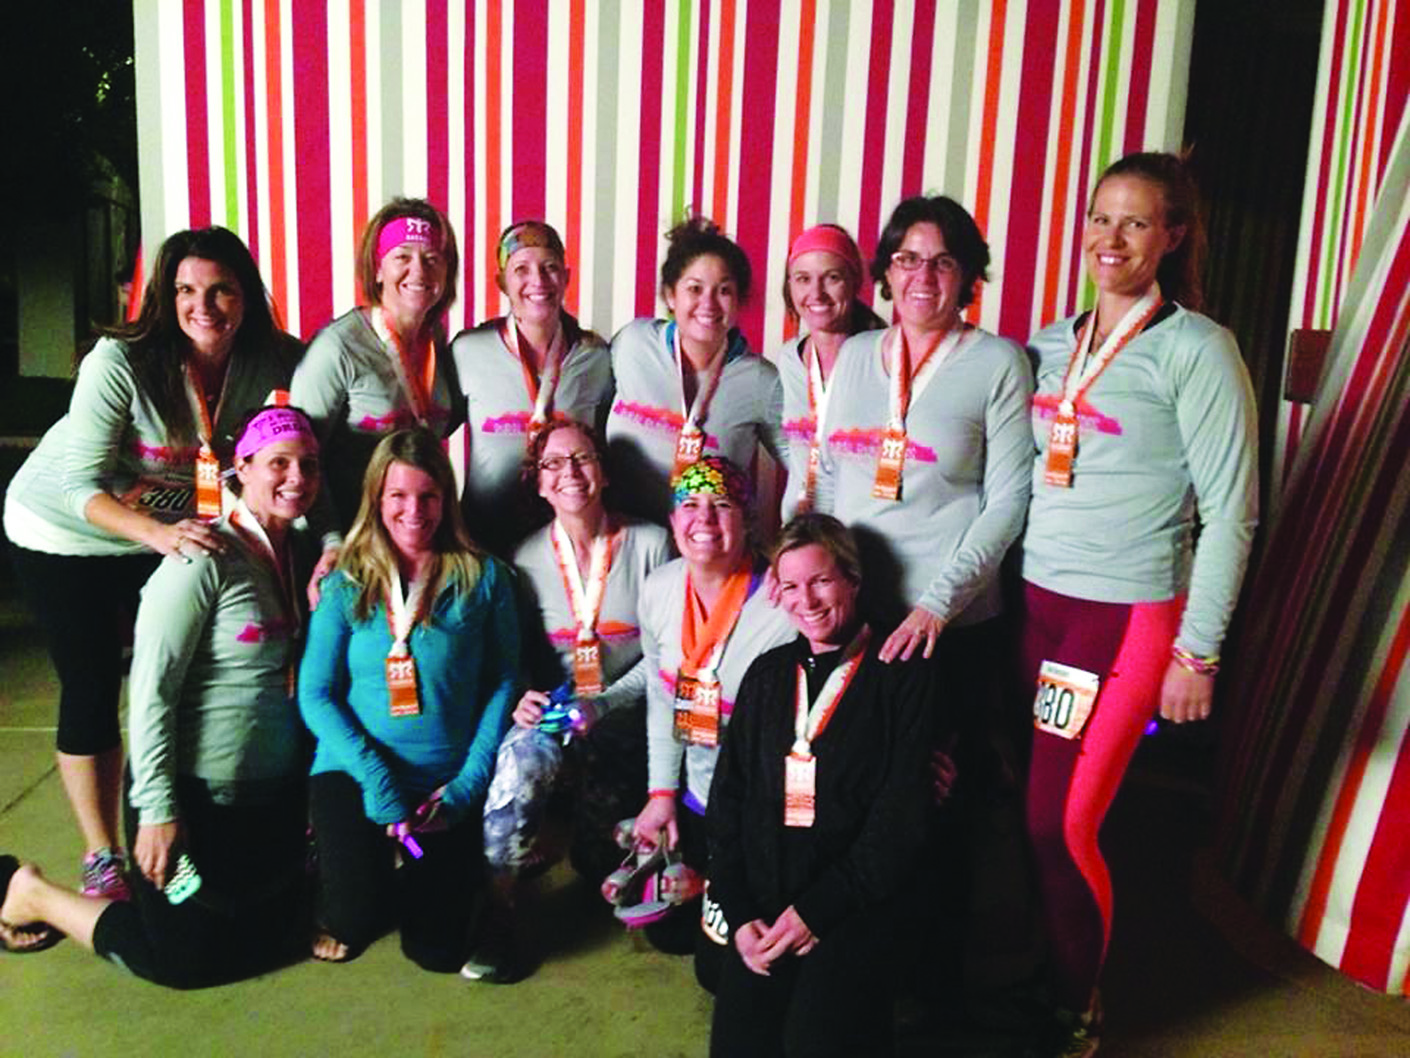 Running Club Raises Money For Local Charities The Ely Times Elko Current Relay Group Of 12 Women That Participated In This Years Ragnar Race Las Vegas